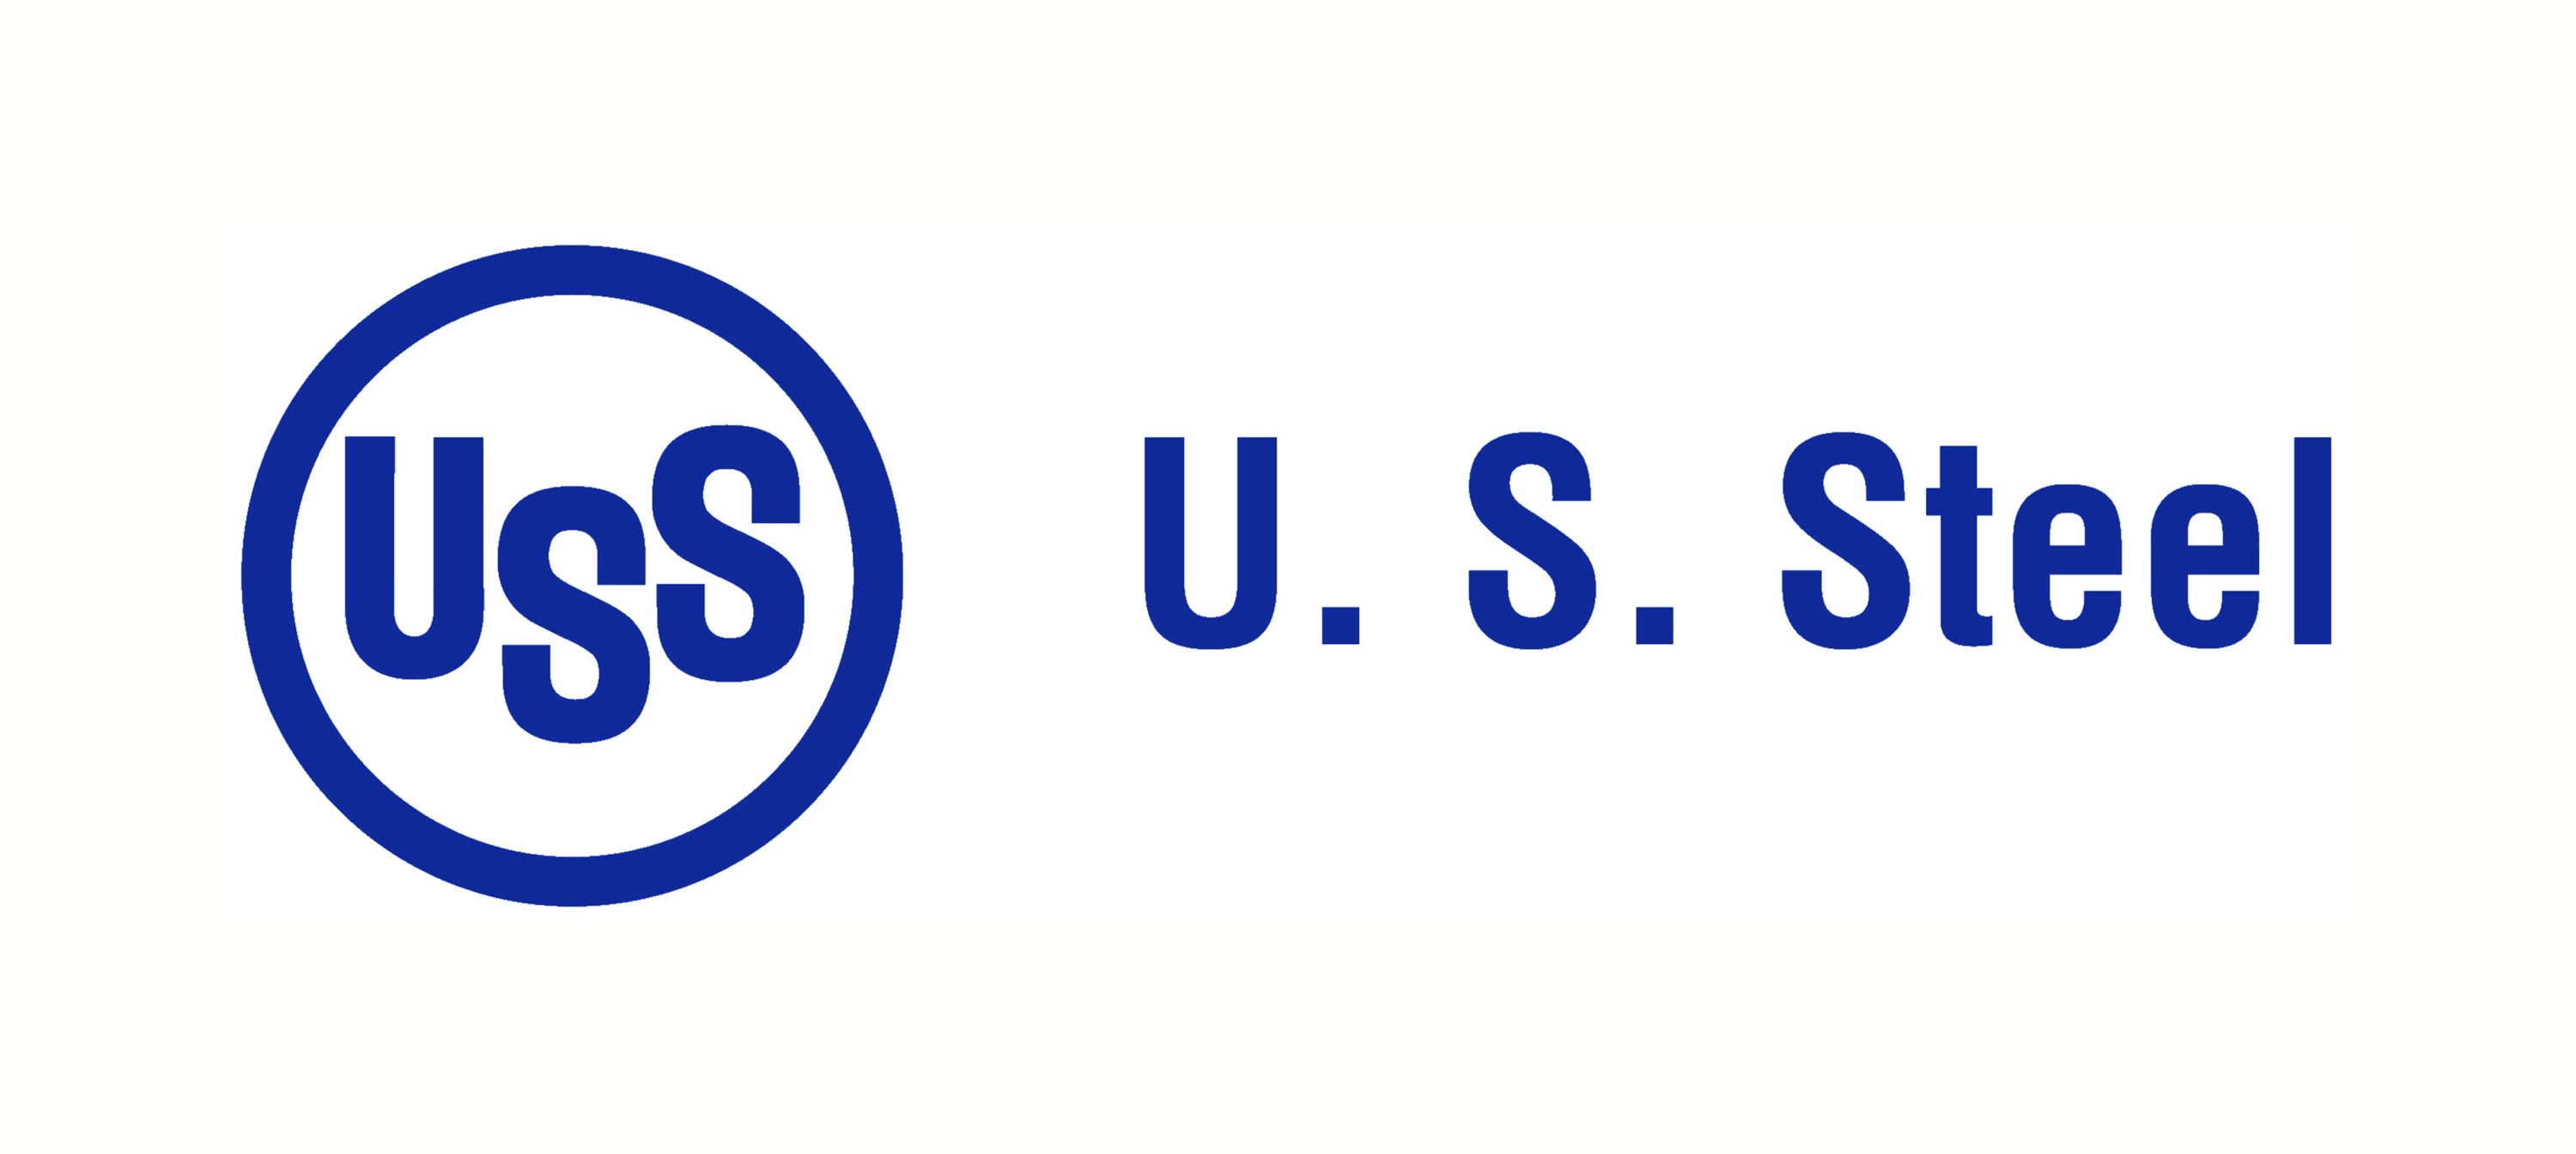 US steel to acquire 49.9% stake in Dahe steel